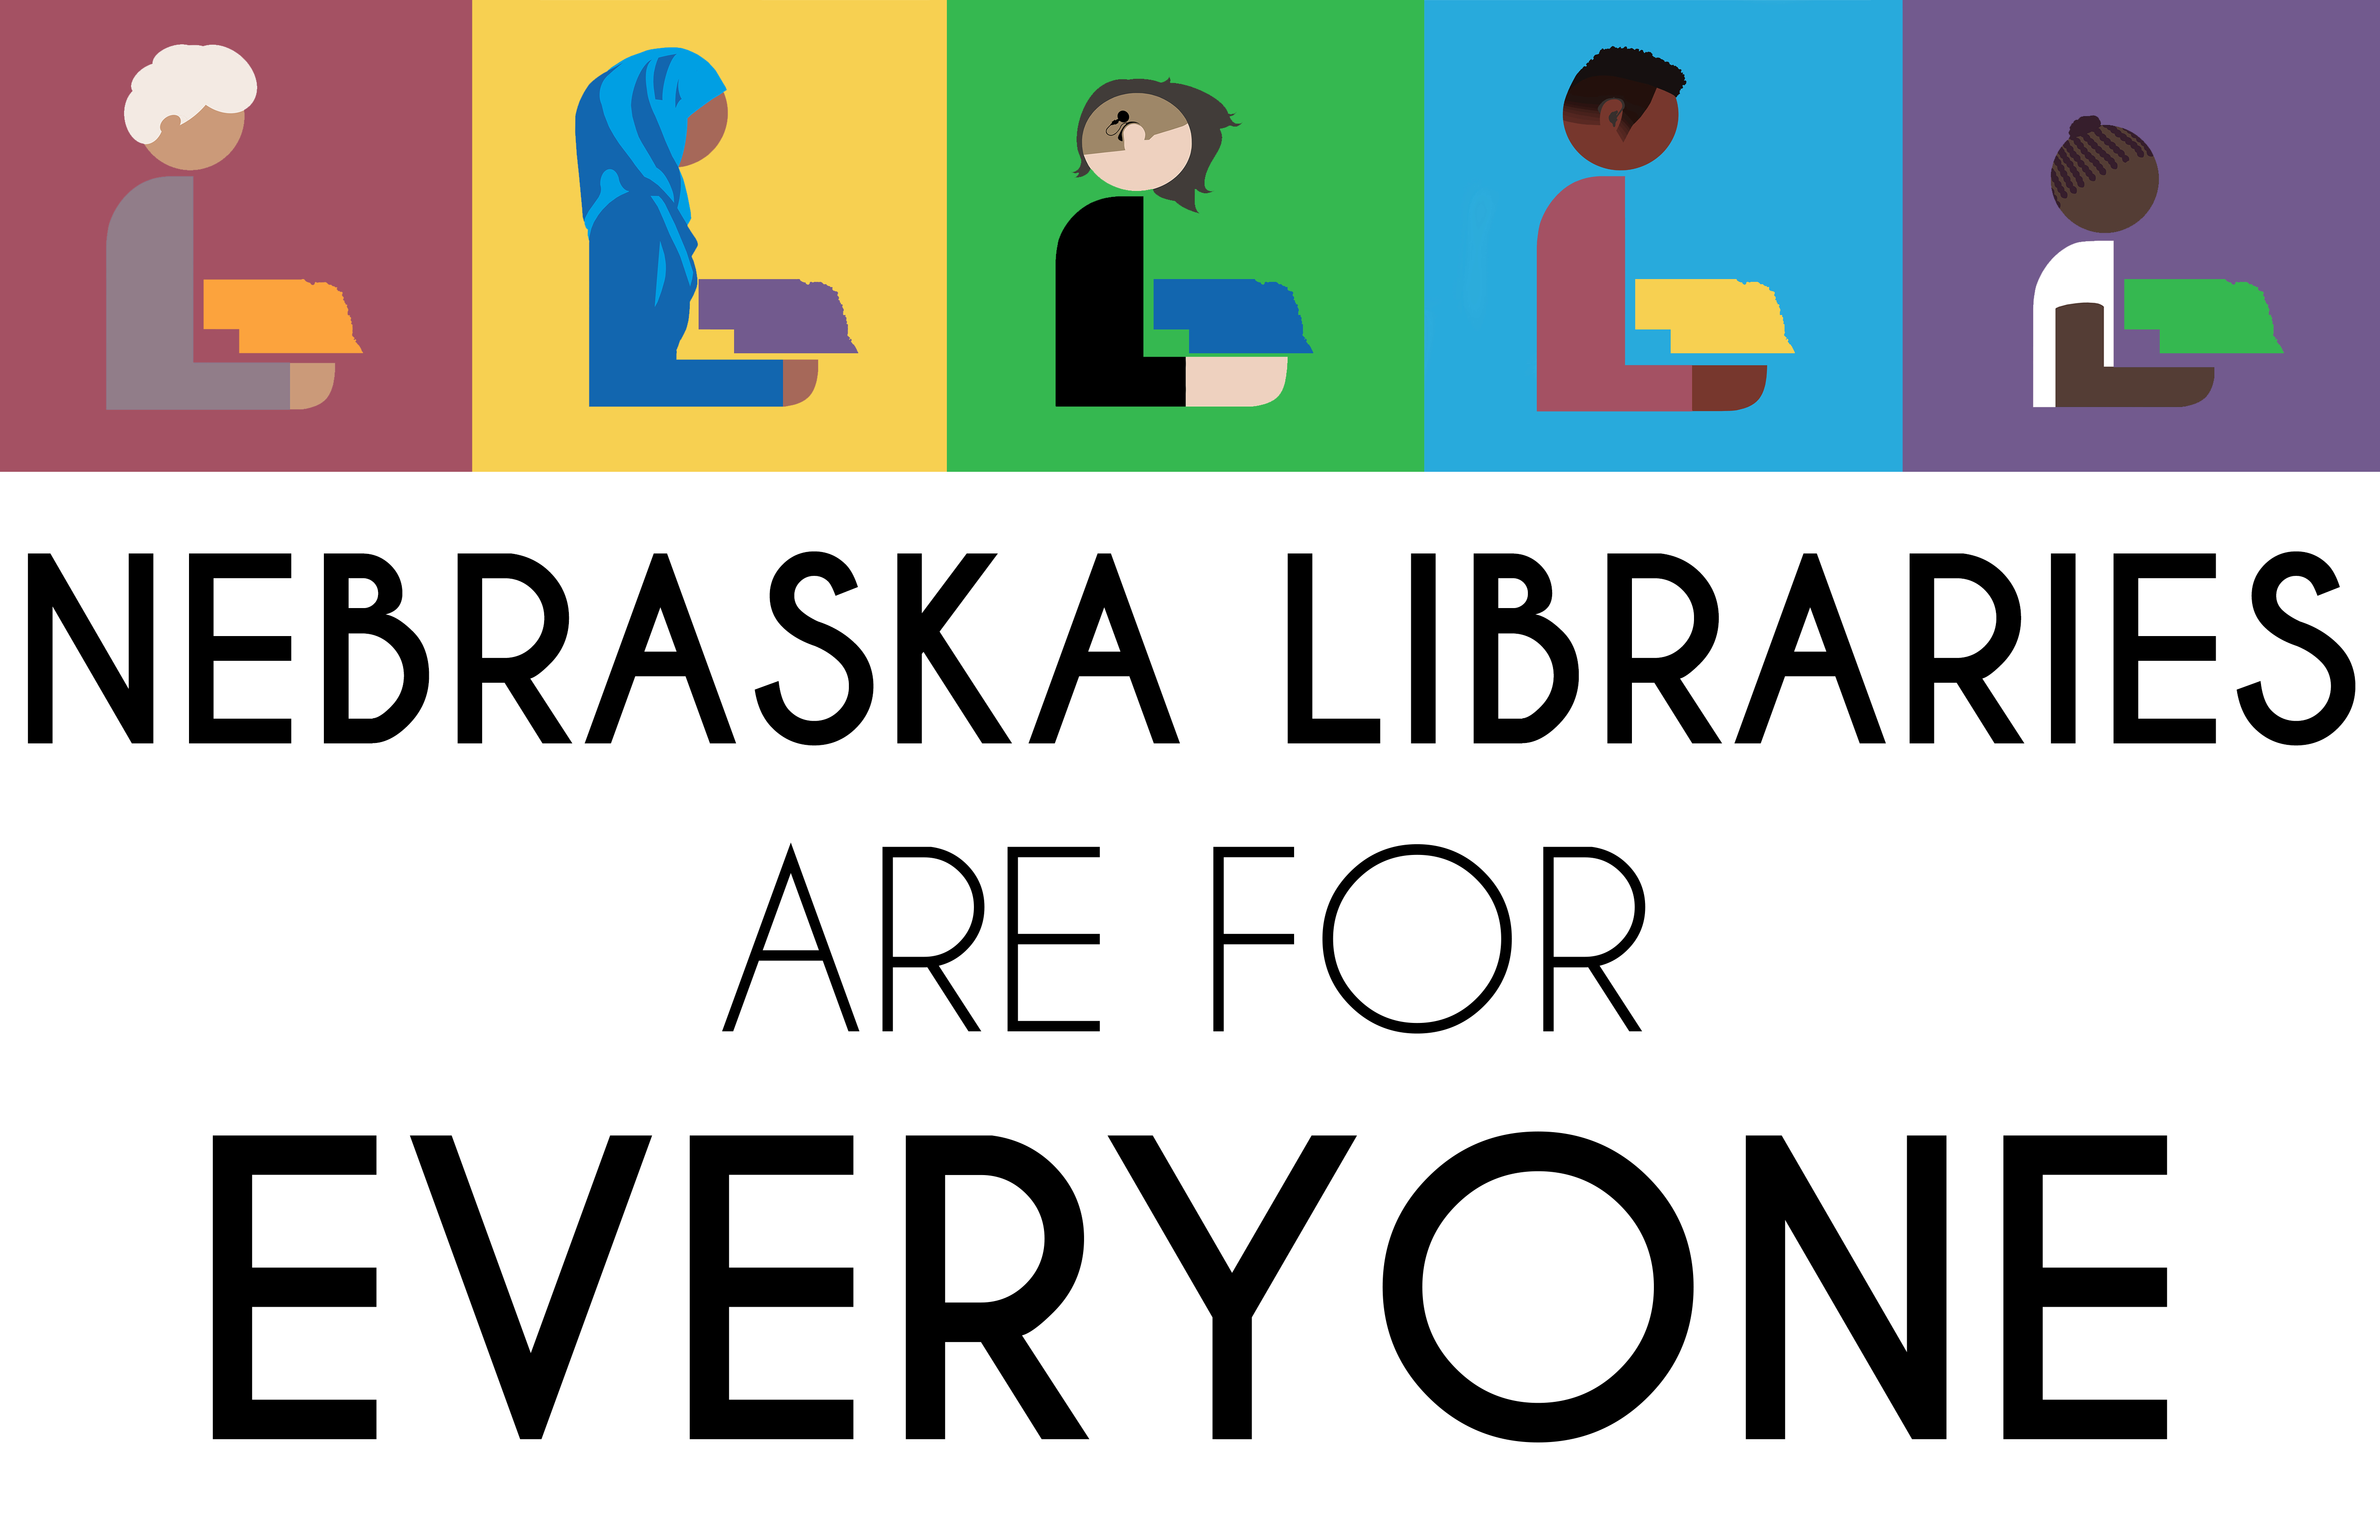 Libraries Are for Everyone